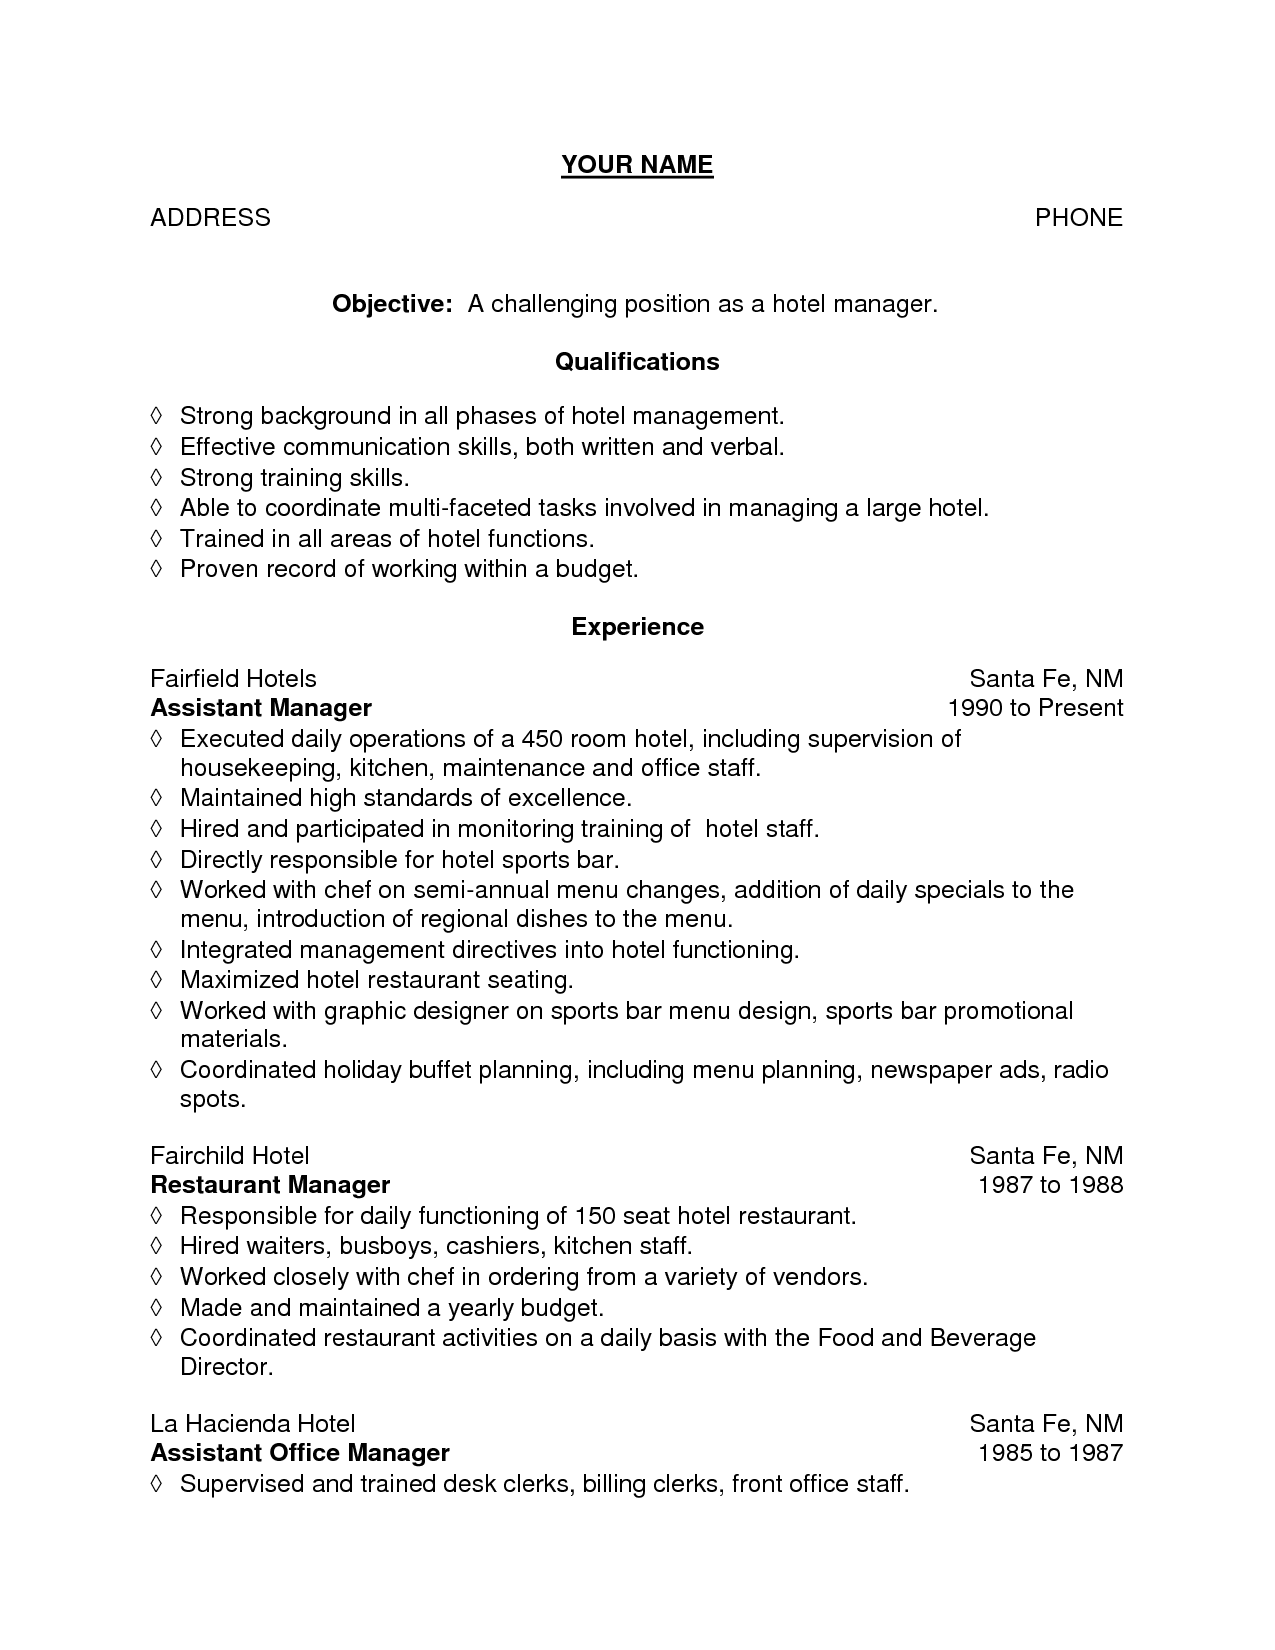 bar server resume sample objective for bartender fast food cashier cover letter waitress head job description - Fast Food Job Description For Resume